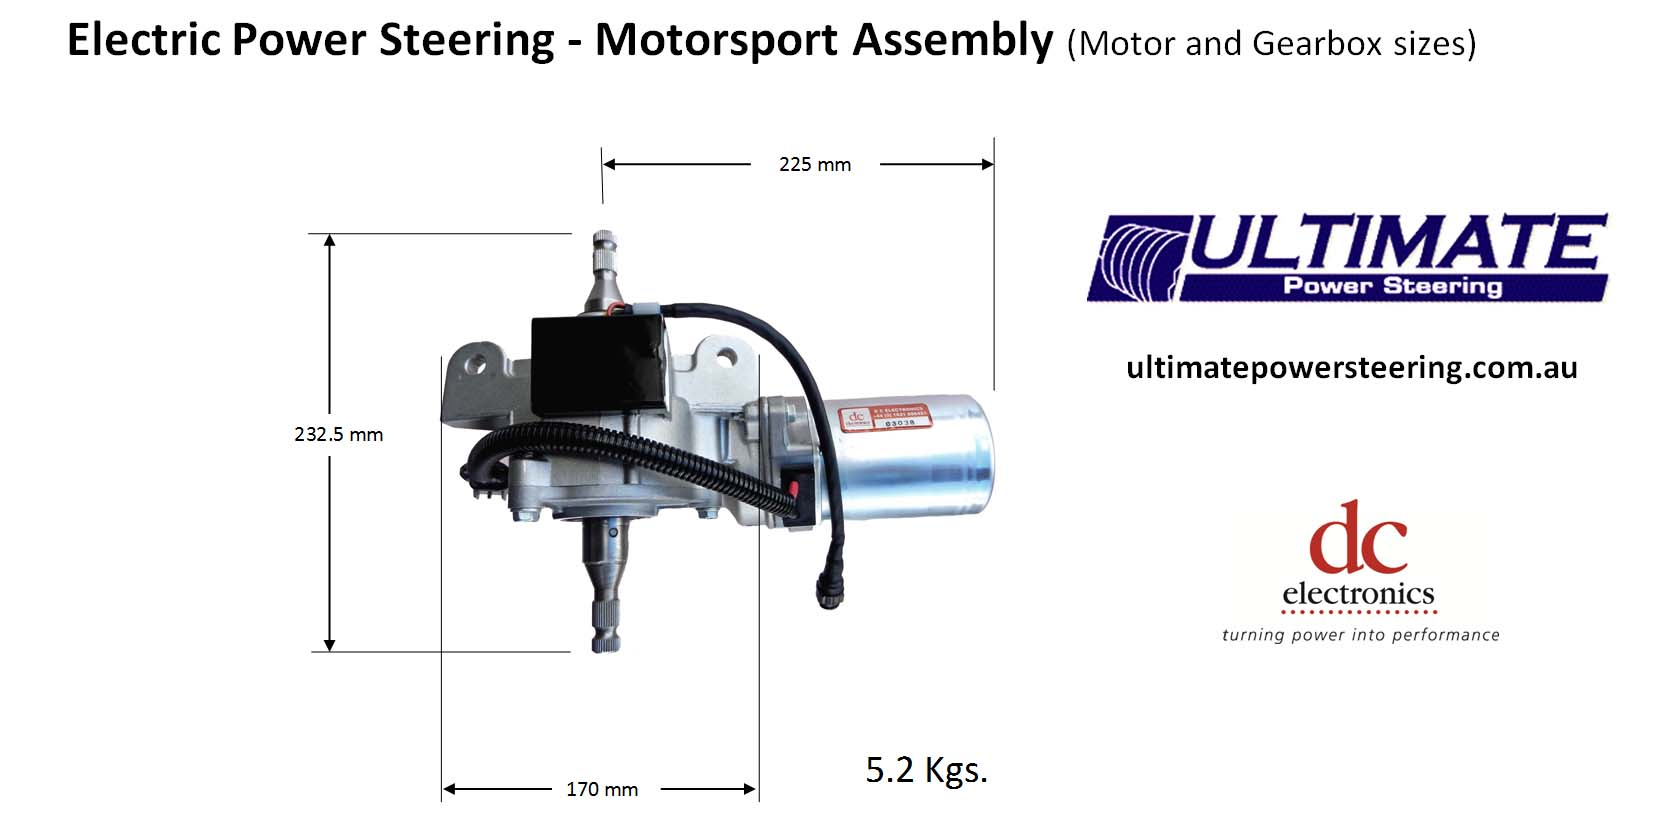 electric-power-steering-motorsport-assembly-sizes.jpg